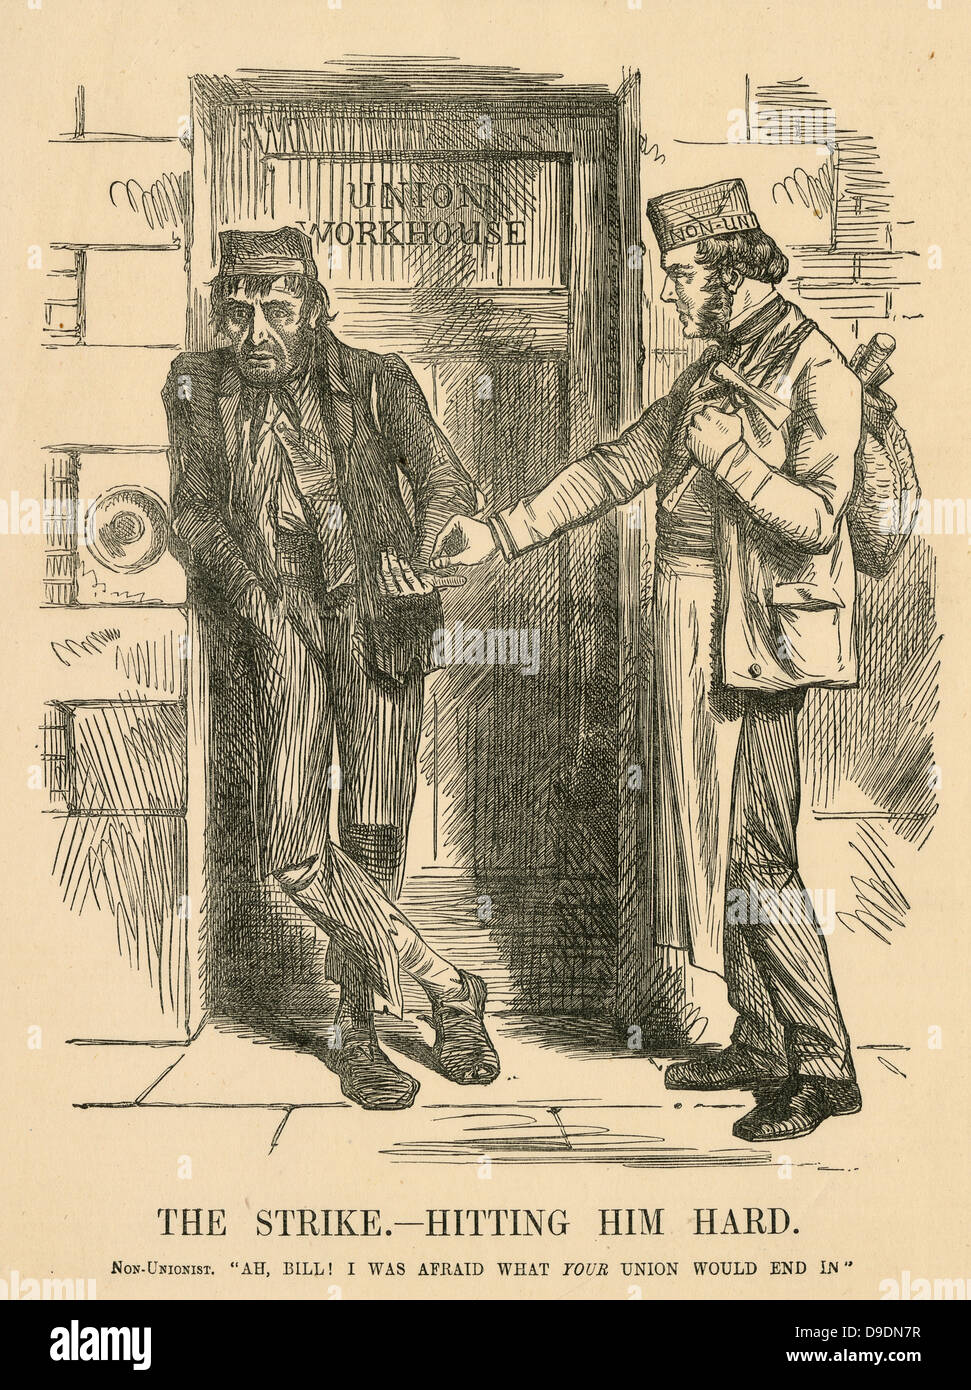 The result of striking - The Workhouse. Cartoon from ''Punch'', London, 1861. - Stock Image